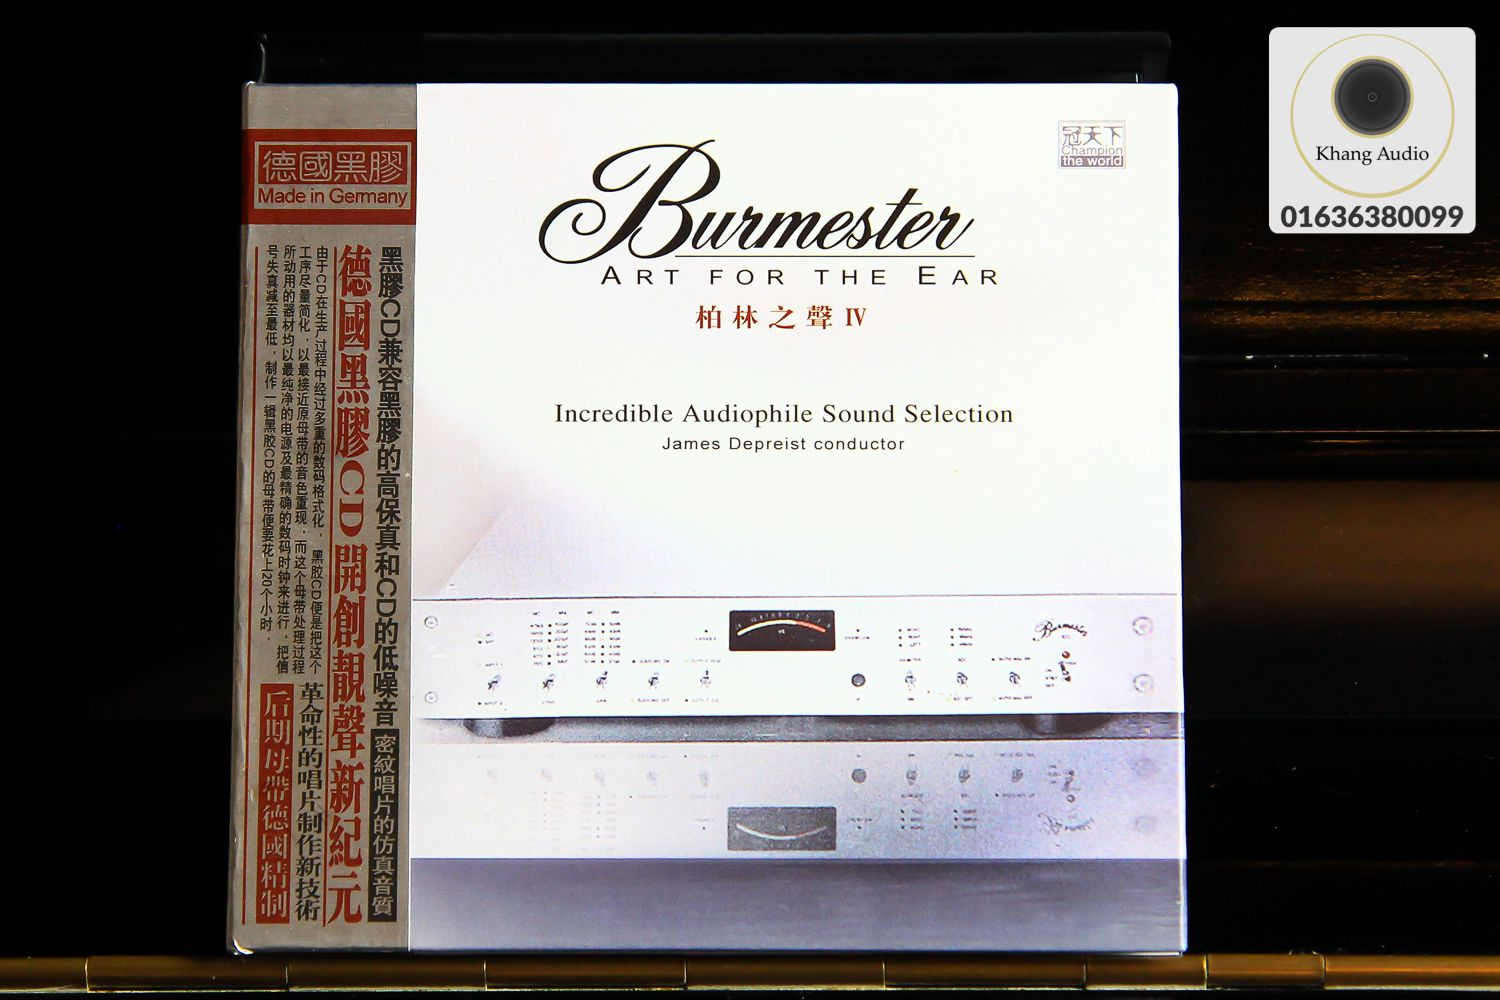 Burmester Vol IV (Art for the ear) - Voice of Berlin HQ